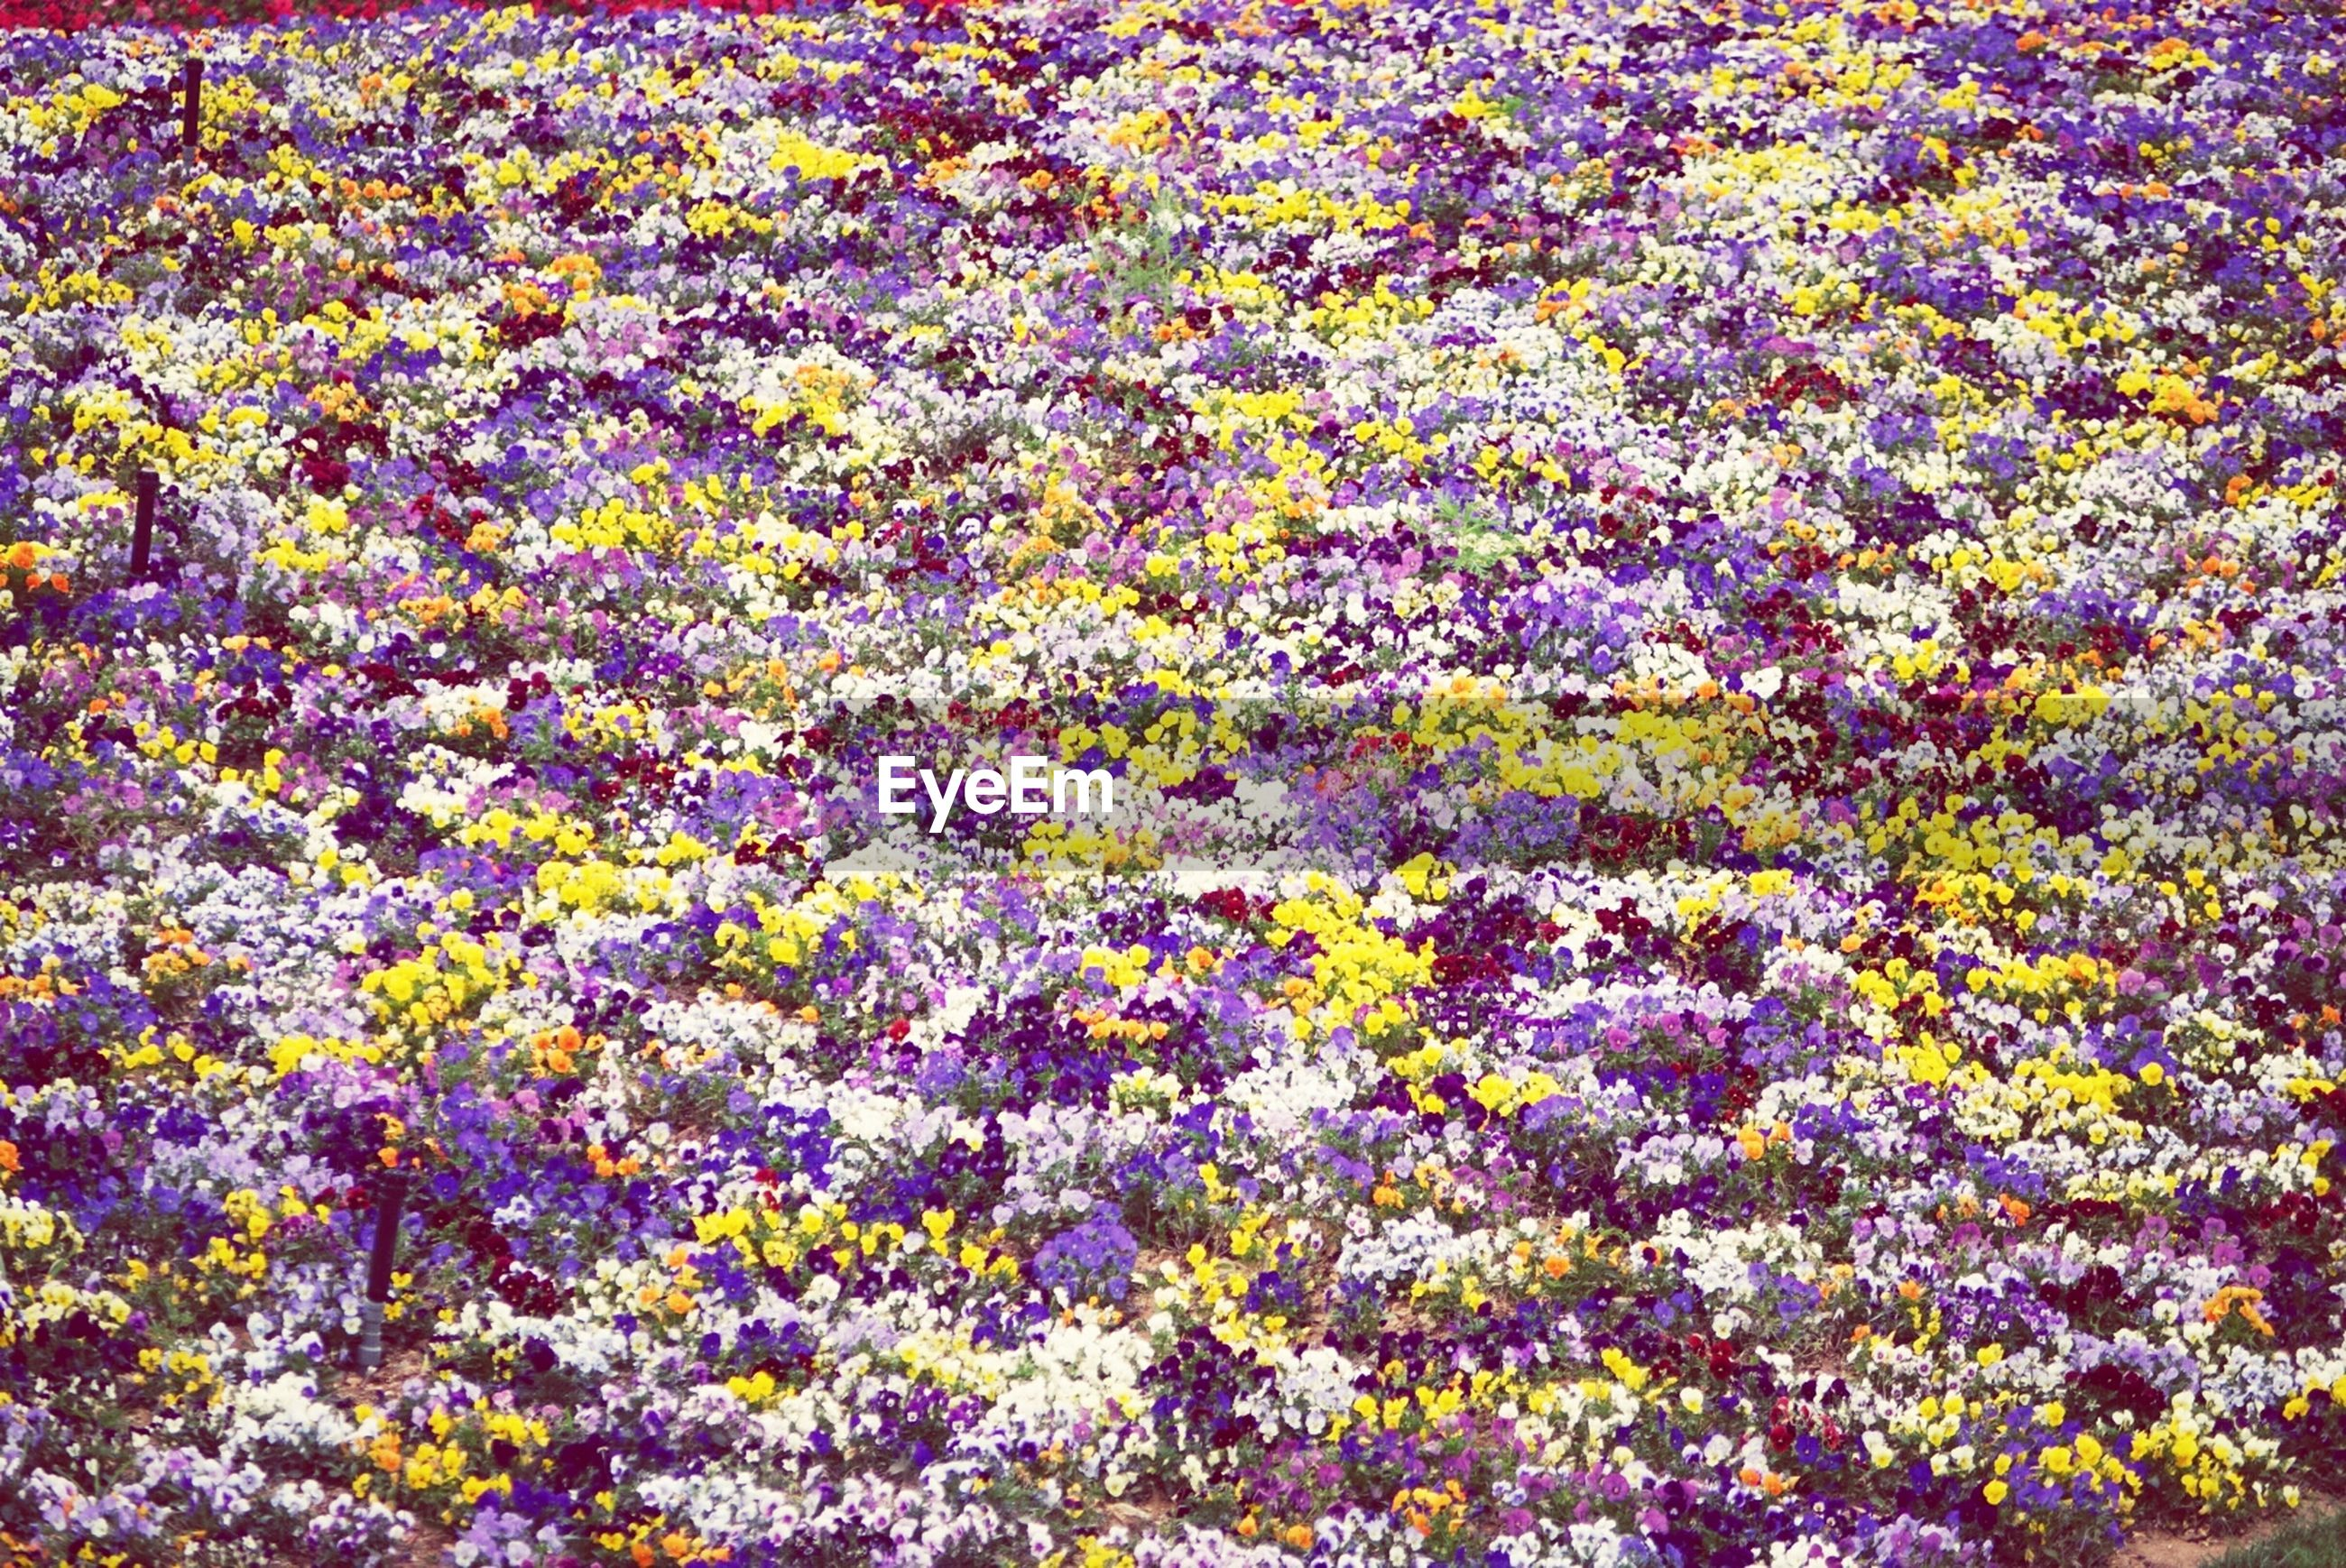 Colorful flowers covering meadow